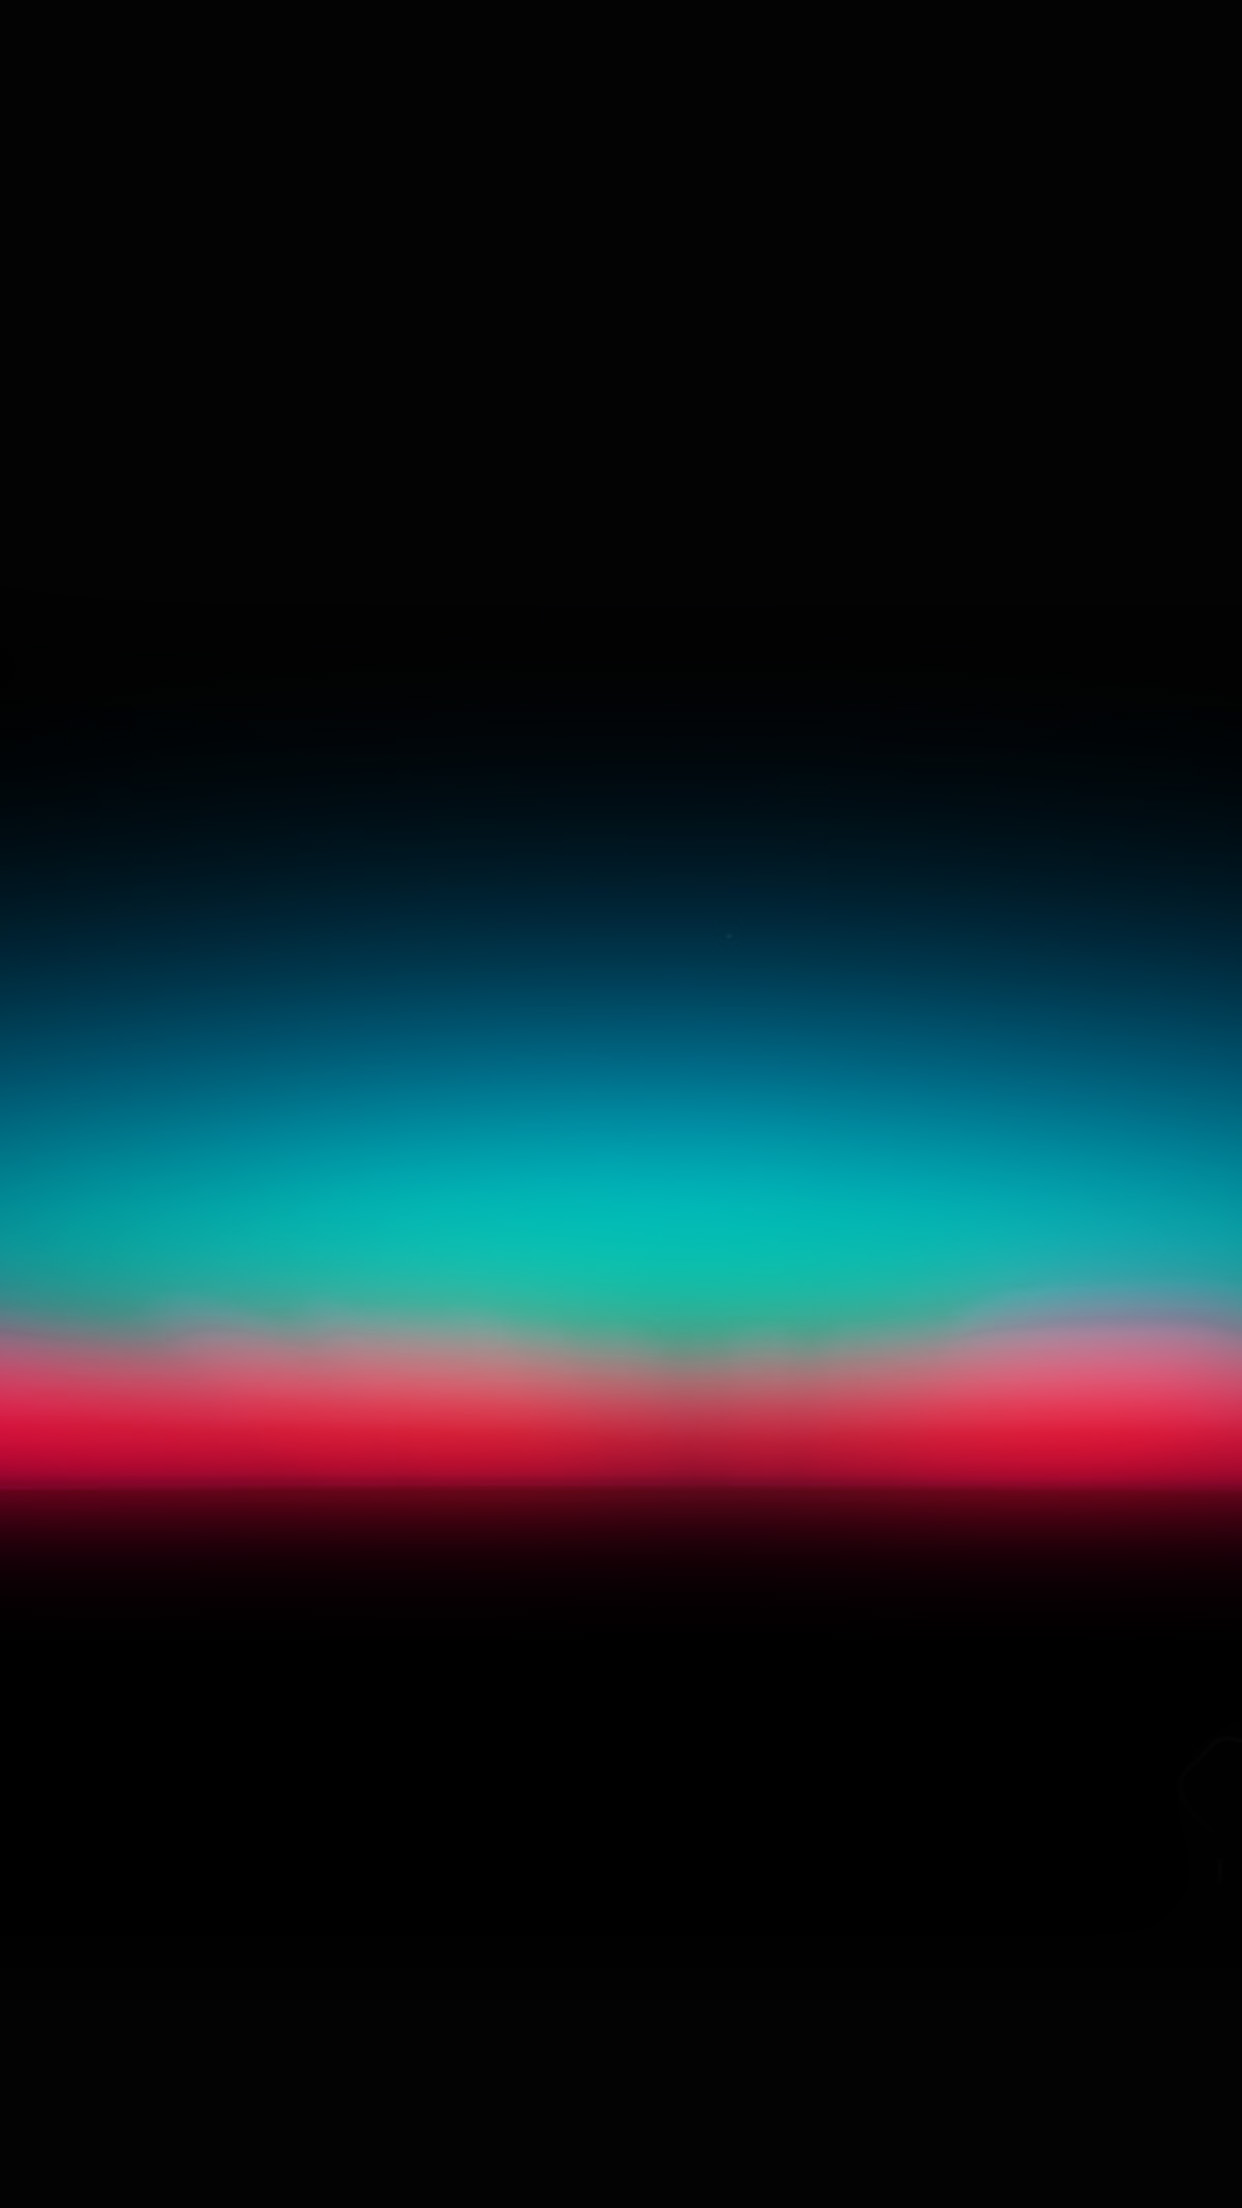 Best Car Logo Wallpapers Hd Papers Co Iphone Wallpaper Sk36 Sunset Dark Red Green